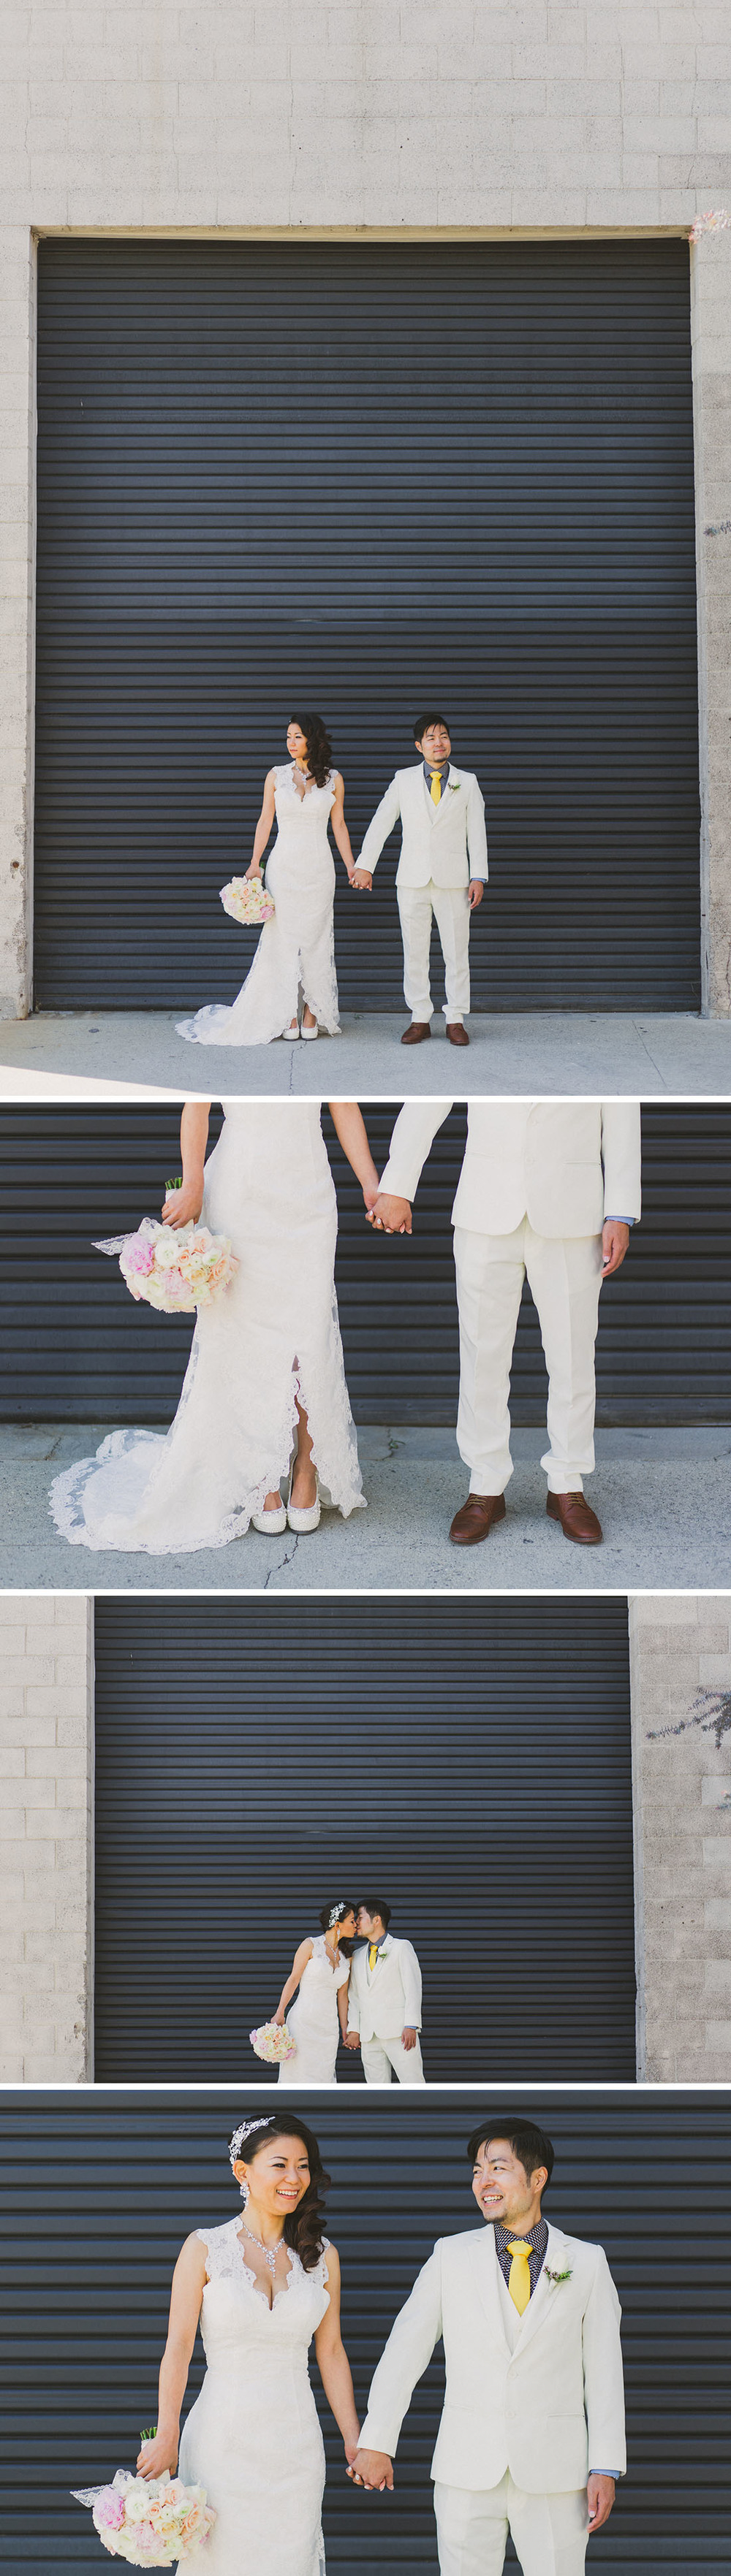 bride and groom; urban LA wedding by Blissfully Illuminated